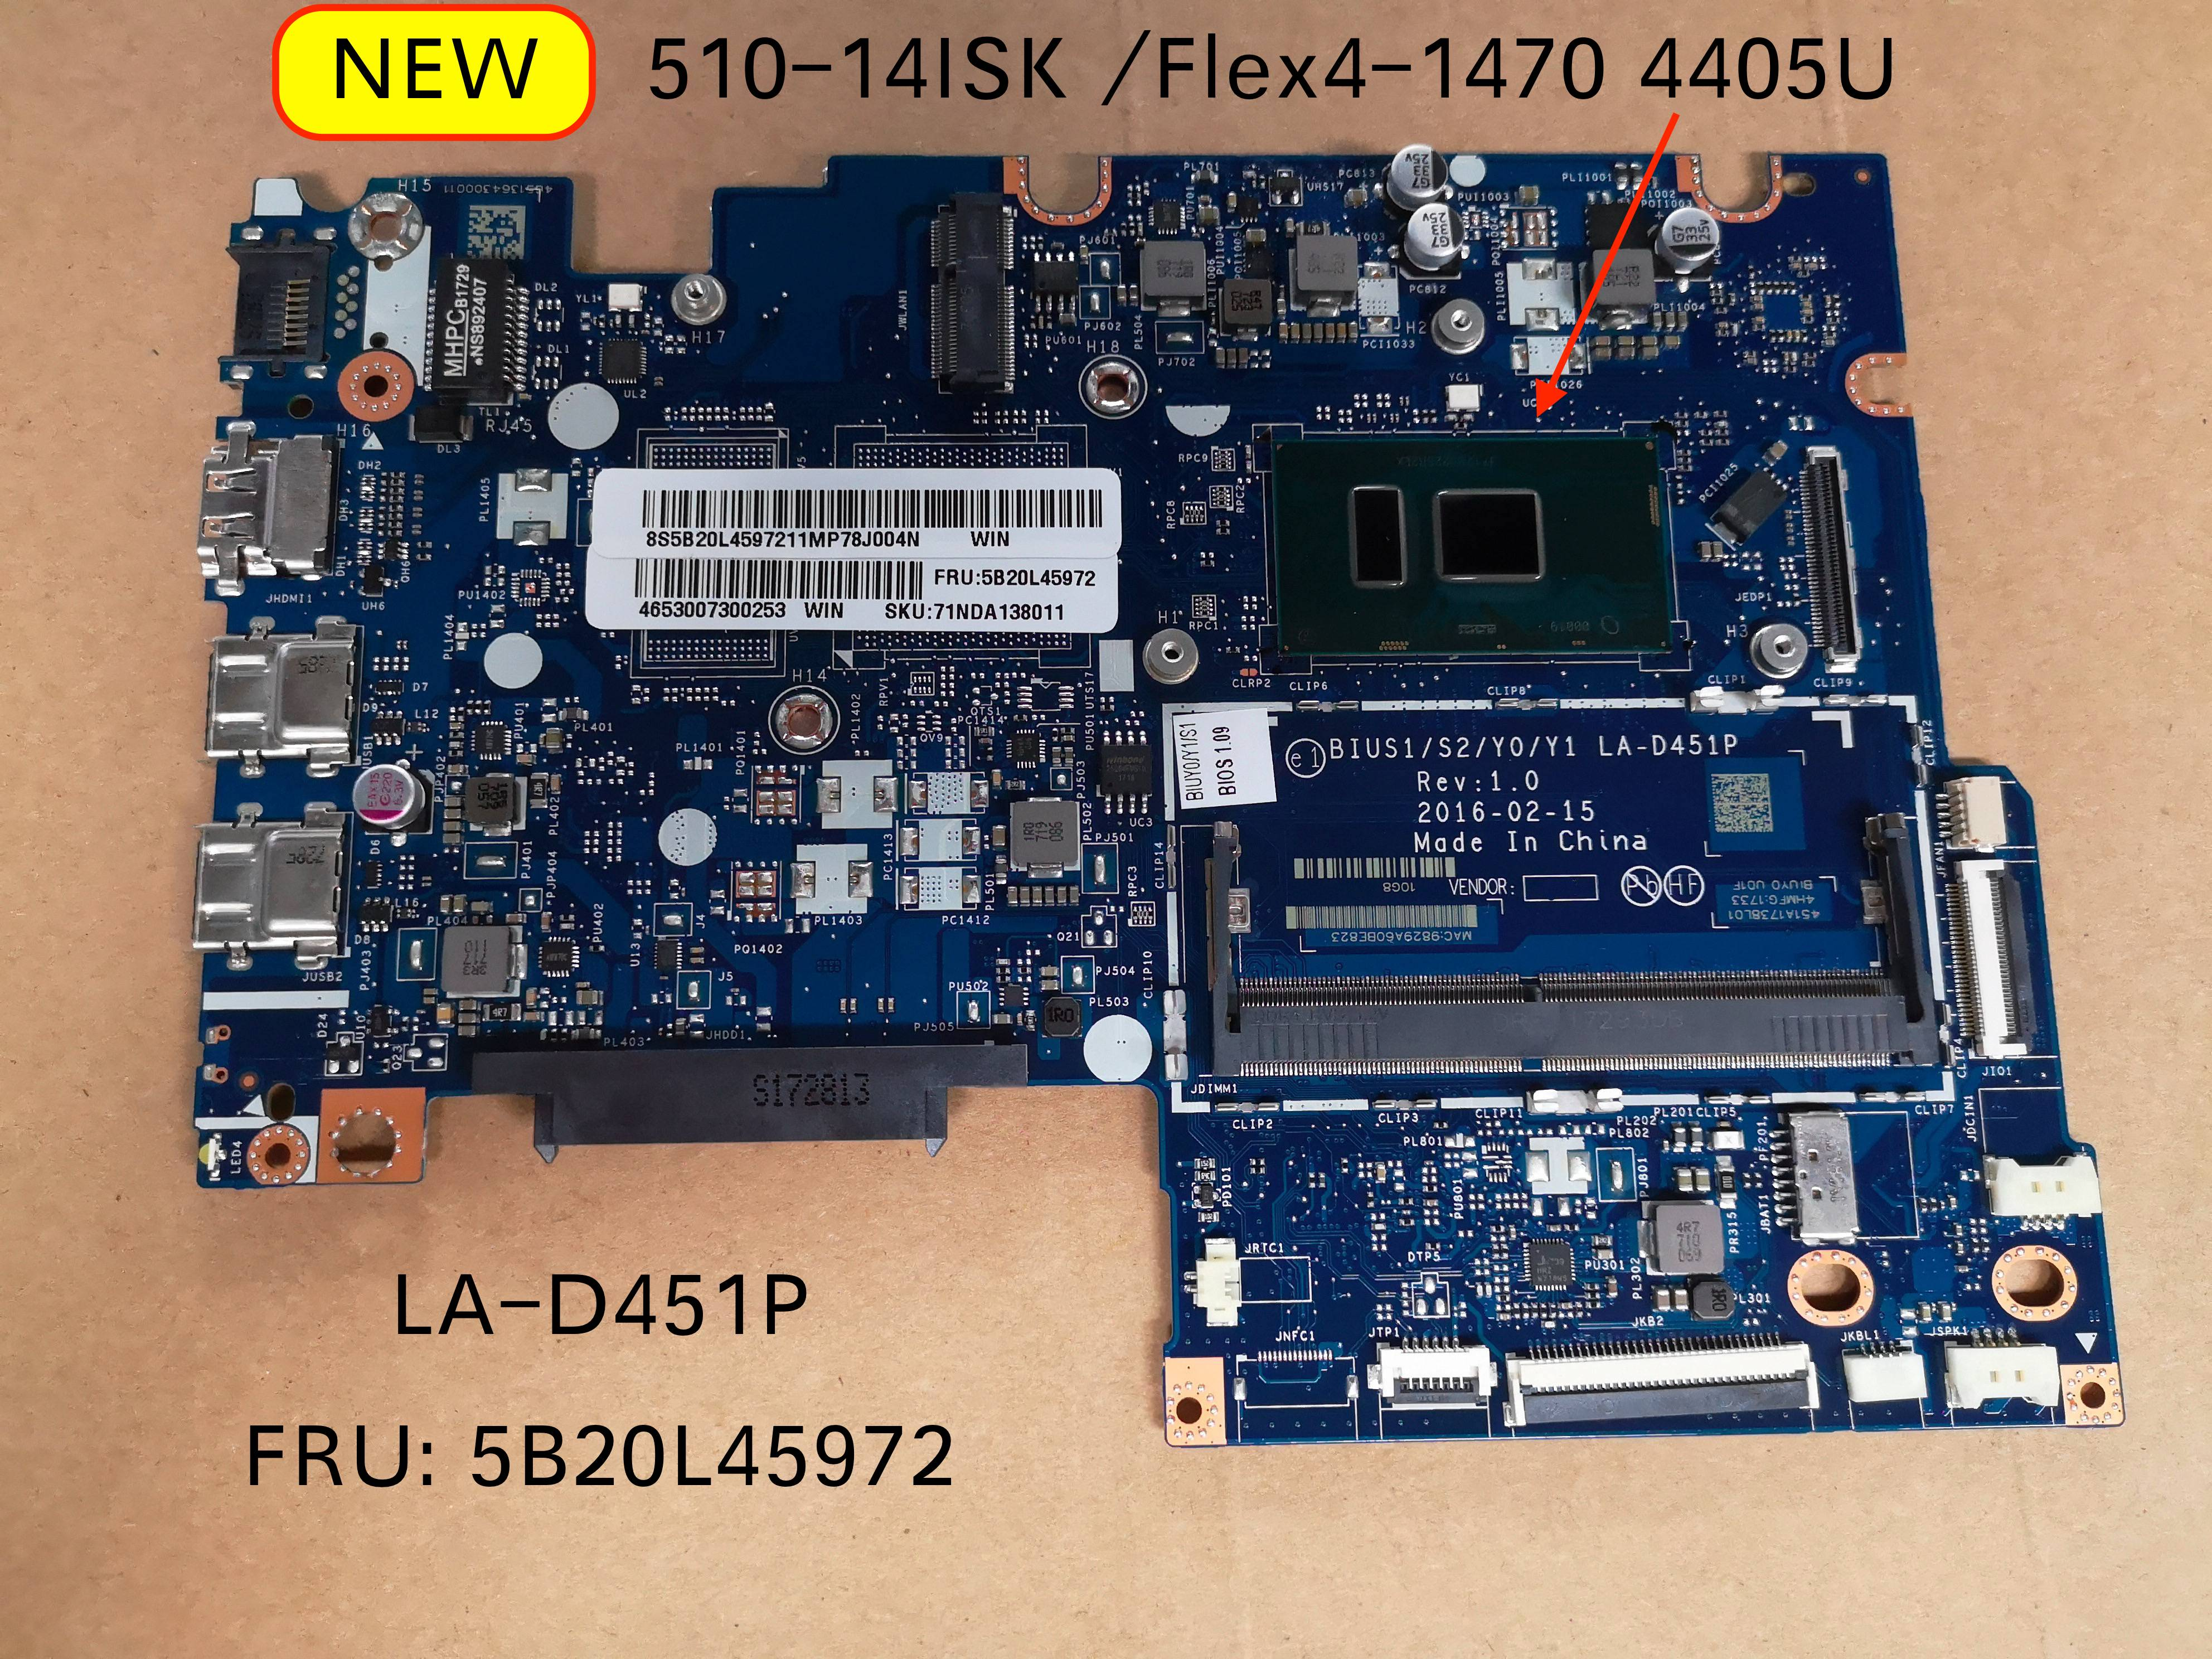 Free Shipping For Lenovo Yoga 510 -14ISK BIUS1/S2/Y0/Y1 LA-D451P Laptop Motherboard 5B20L45972 4005U CPU